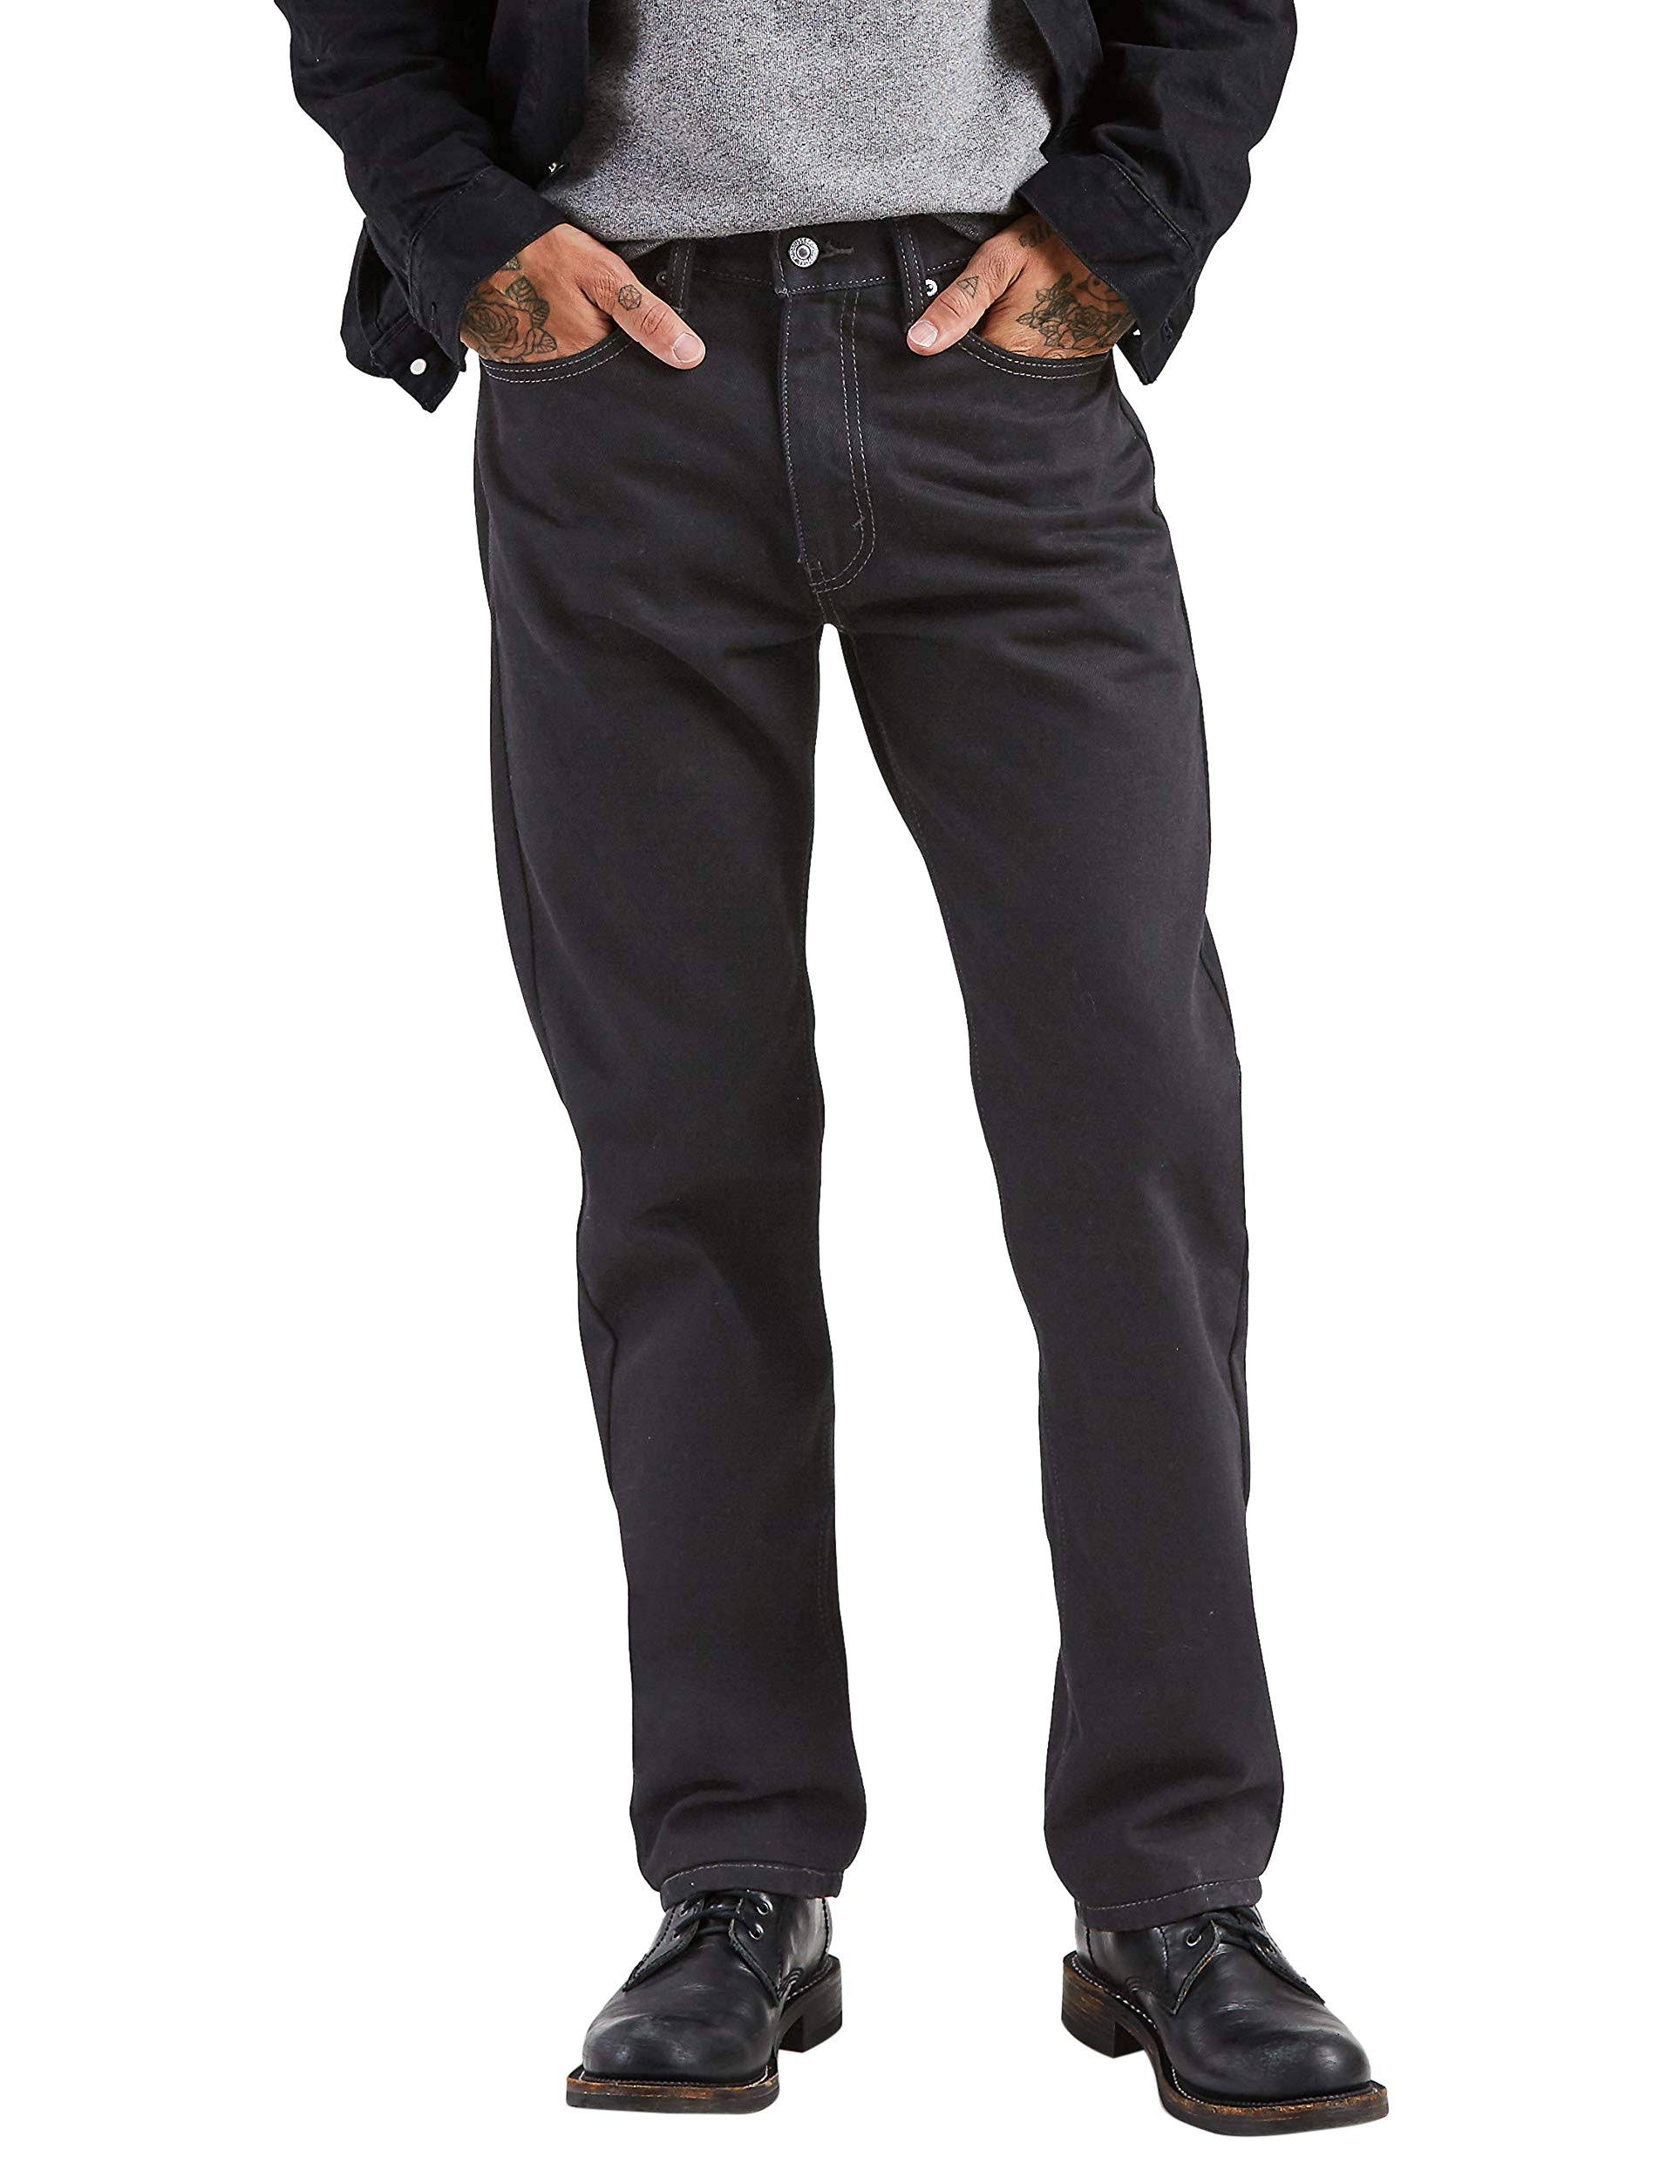 Levi's - Men's 505 Regular Fit Jeans (Black)